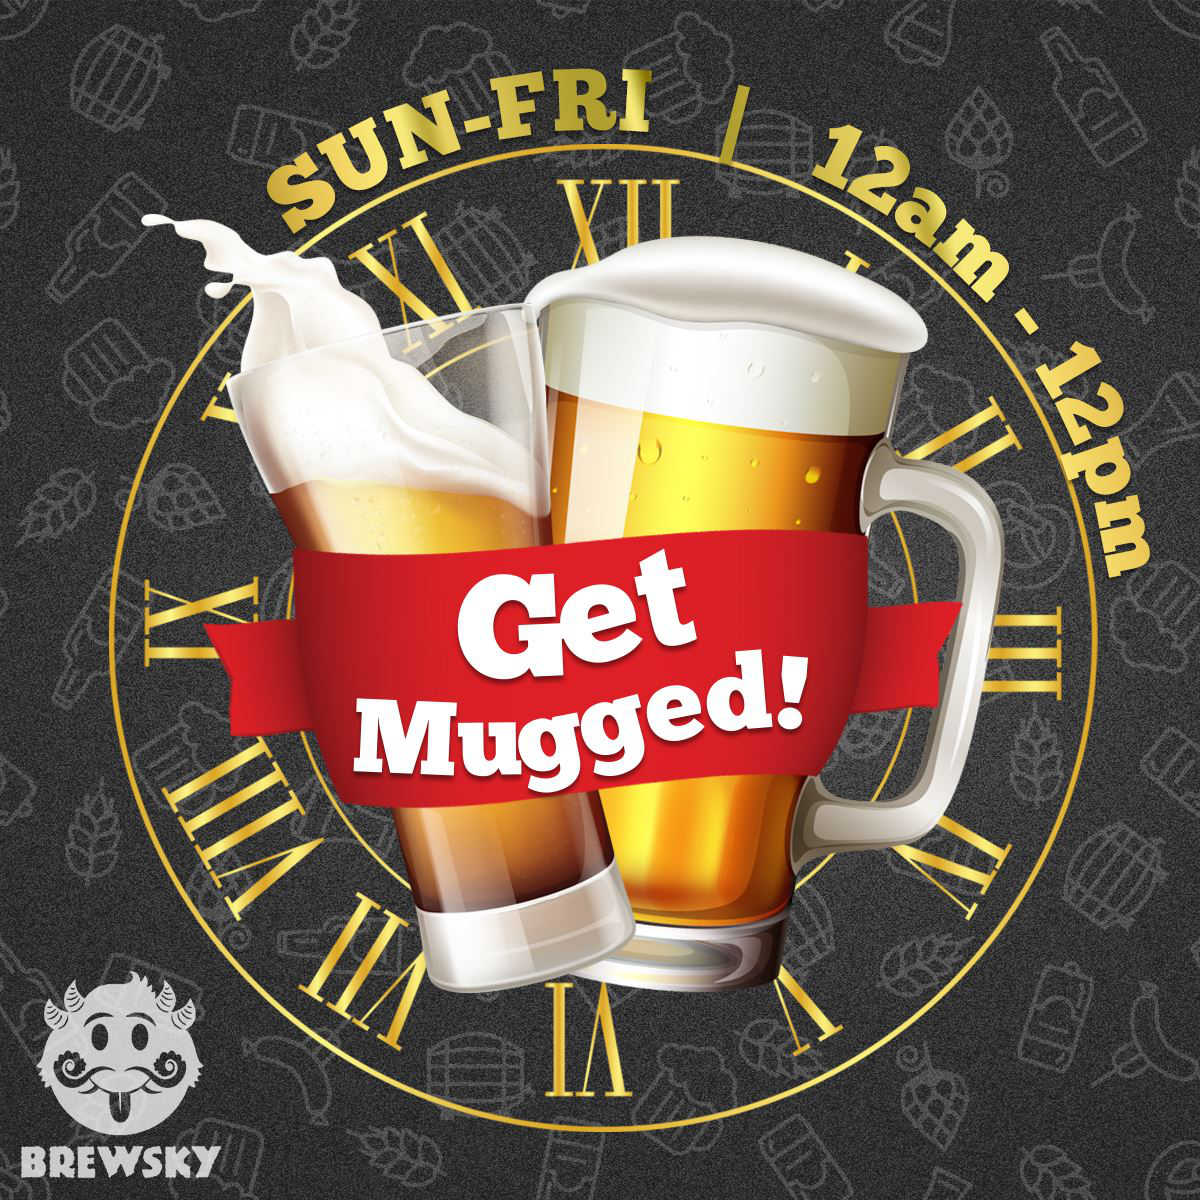 Get Mugged creative for Brewsky microbrewery